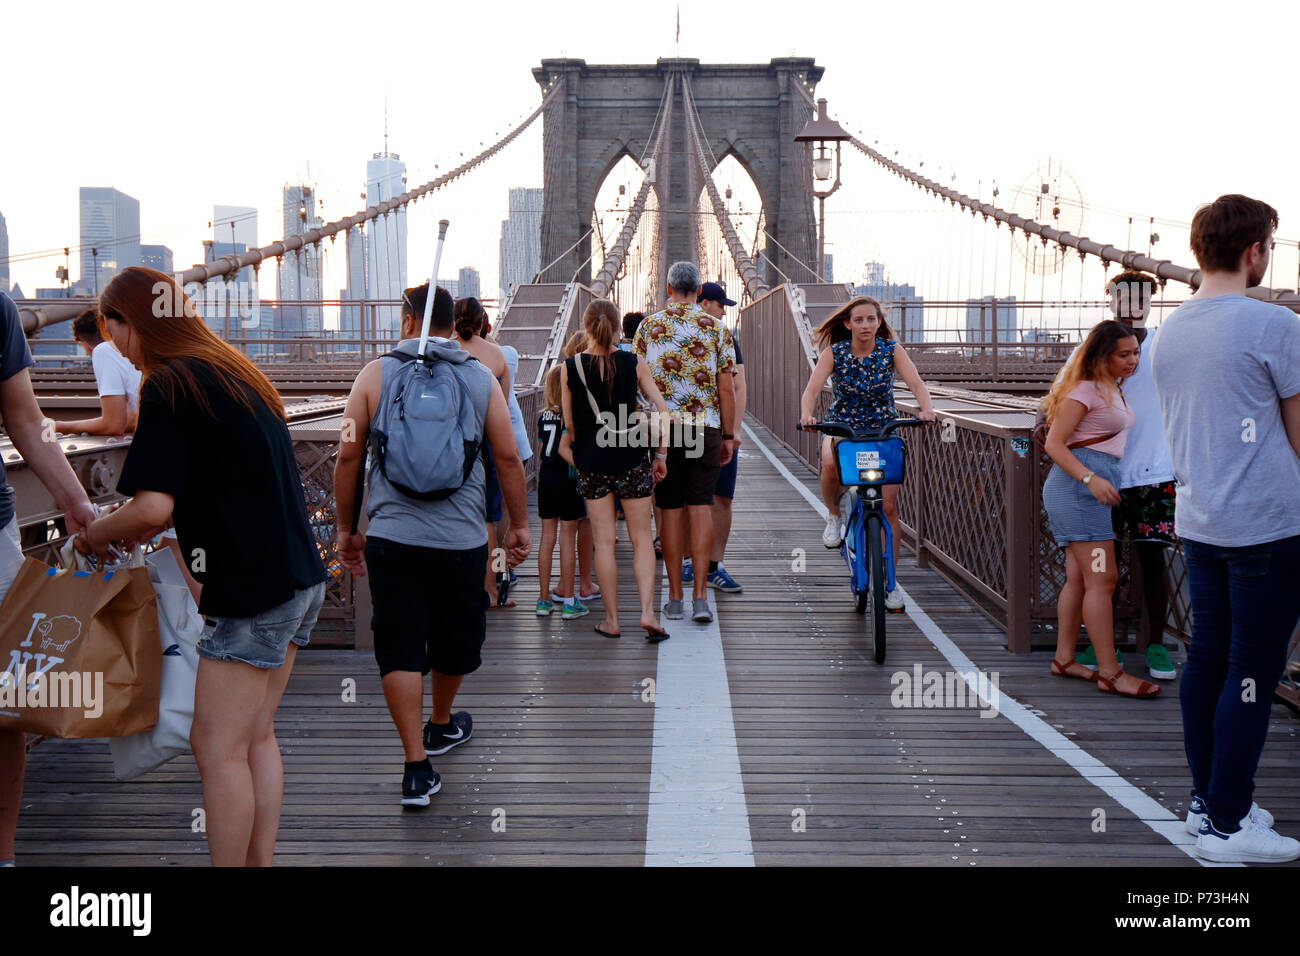 Pedestrians, and cyclists over on the Brooklyn Bridge foot path - Stock Image